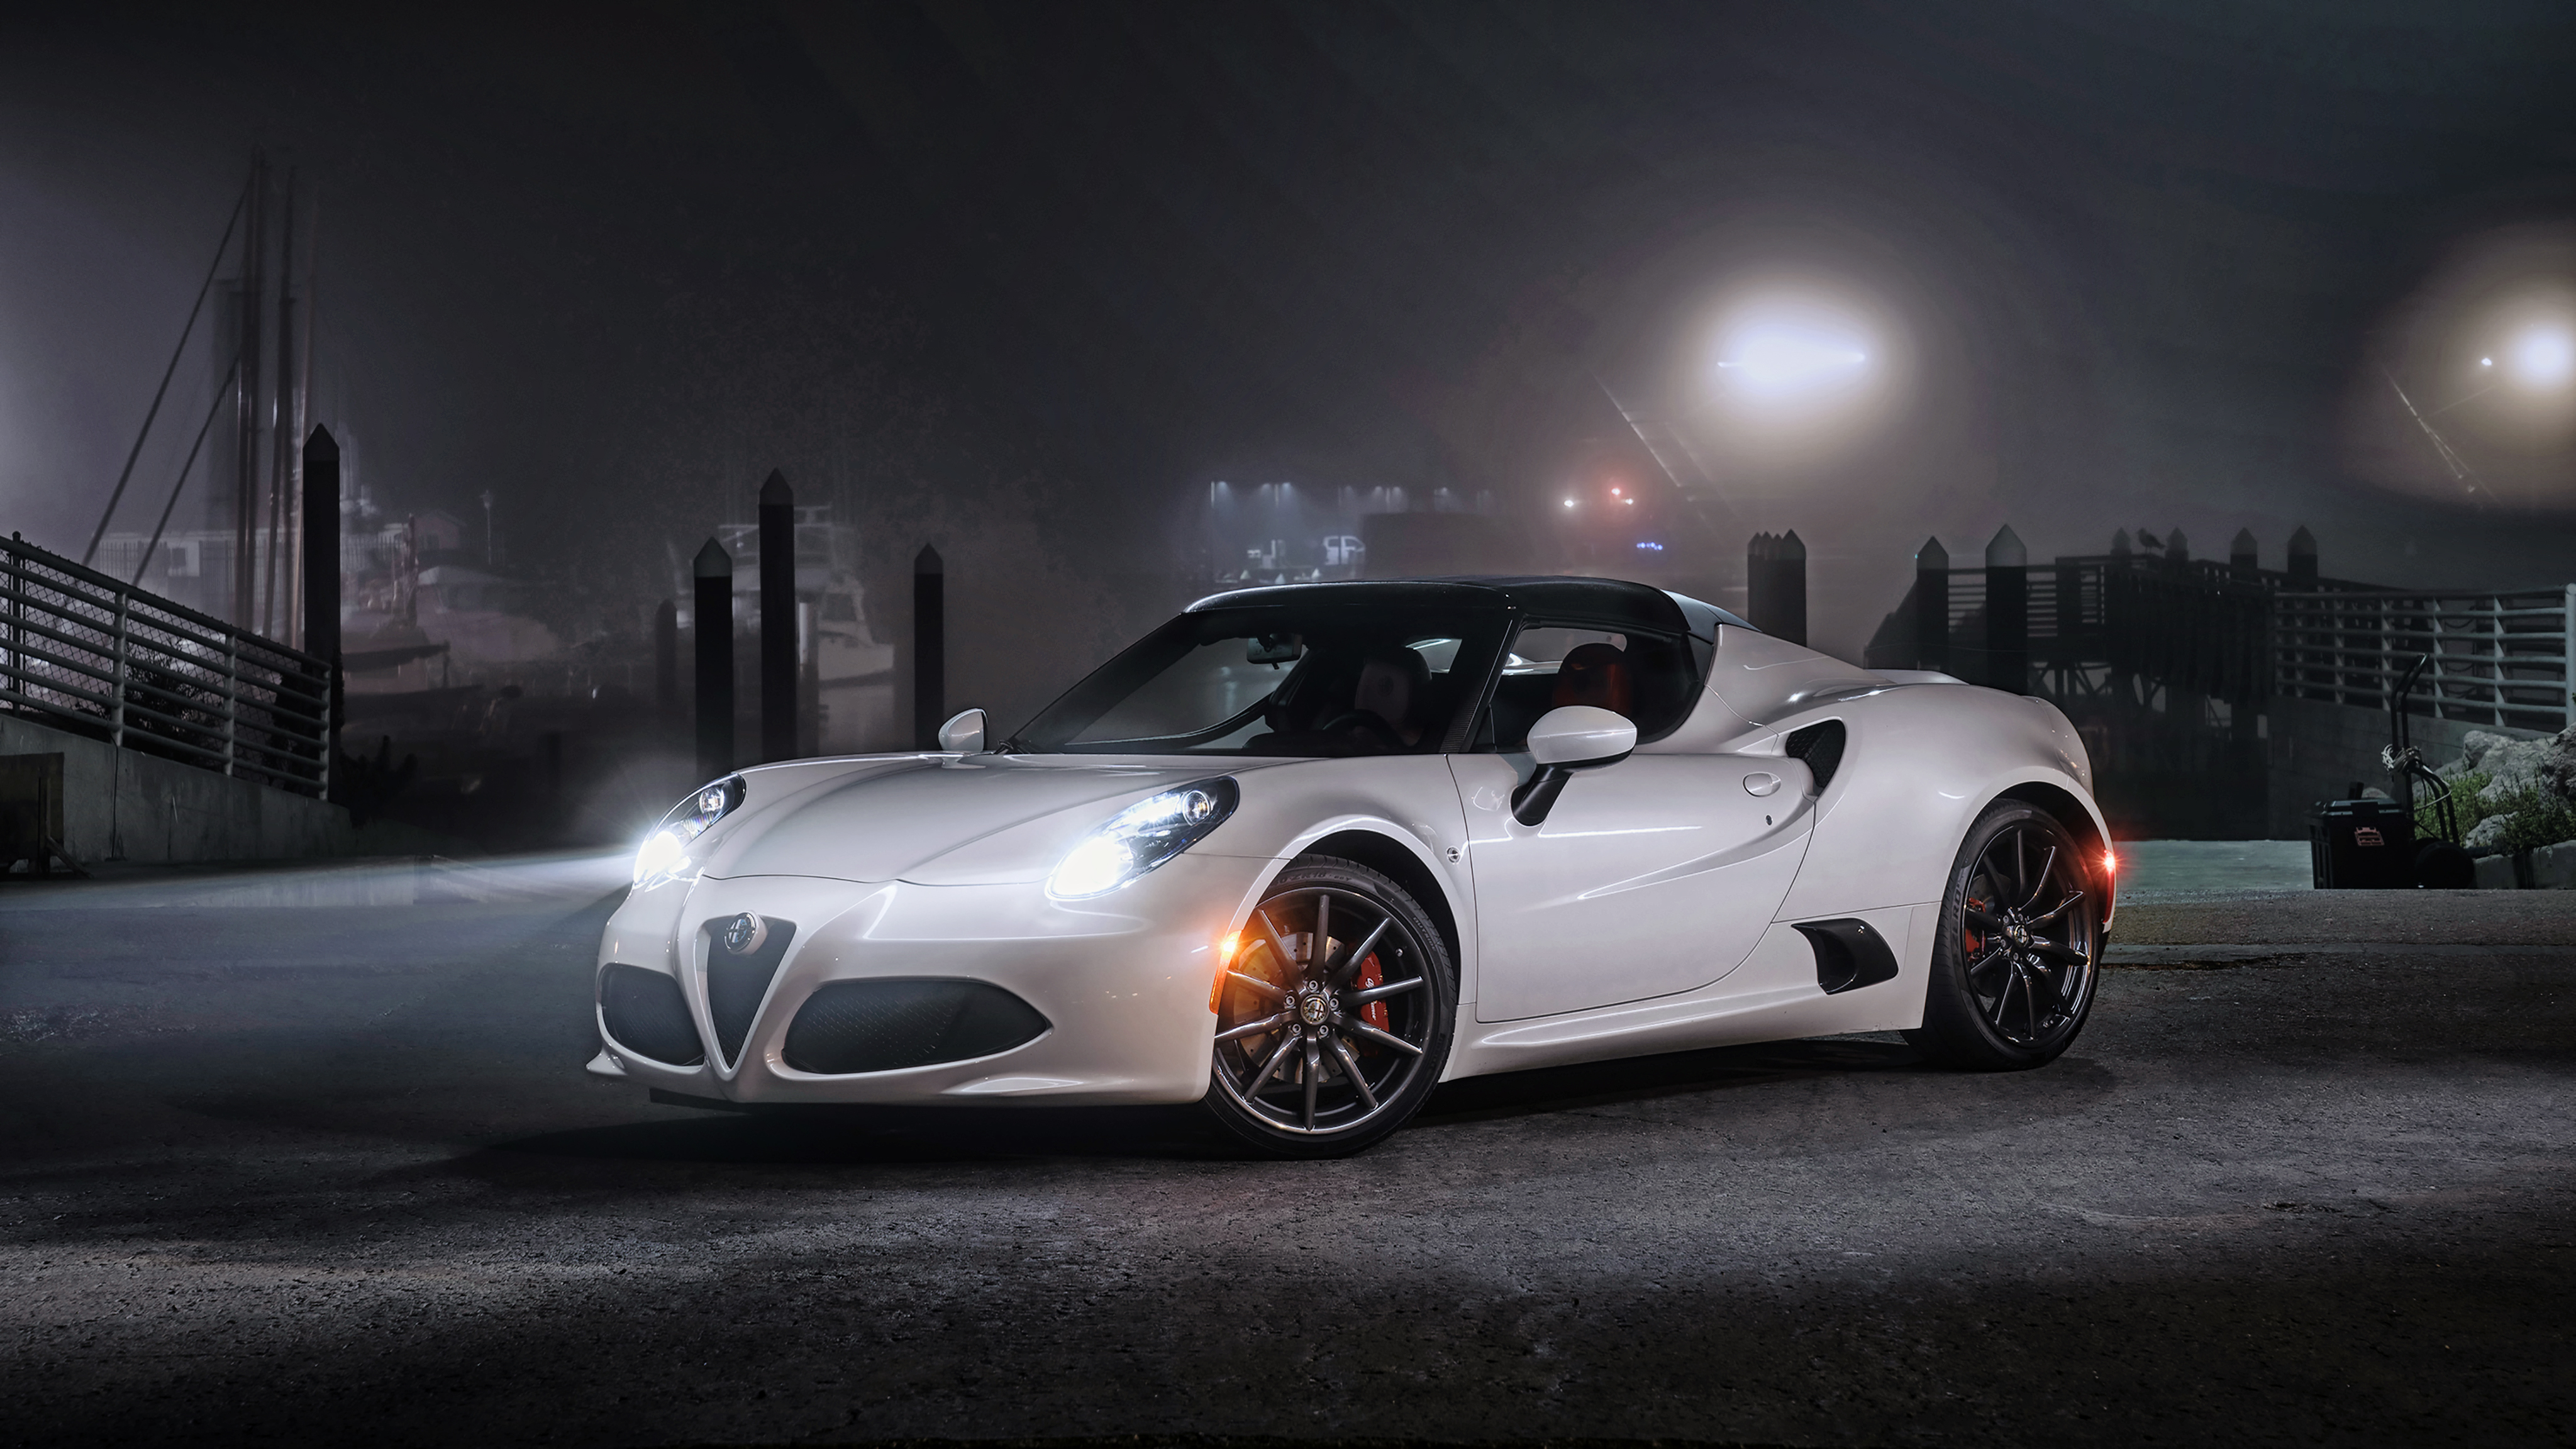 Car Wallpapers Hd 2015 Download Alfa Romeo 4c Spider Hd Cars 4k Wallpapers Images